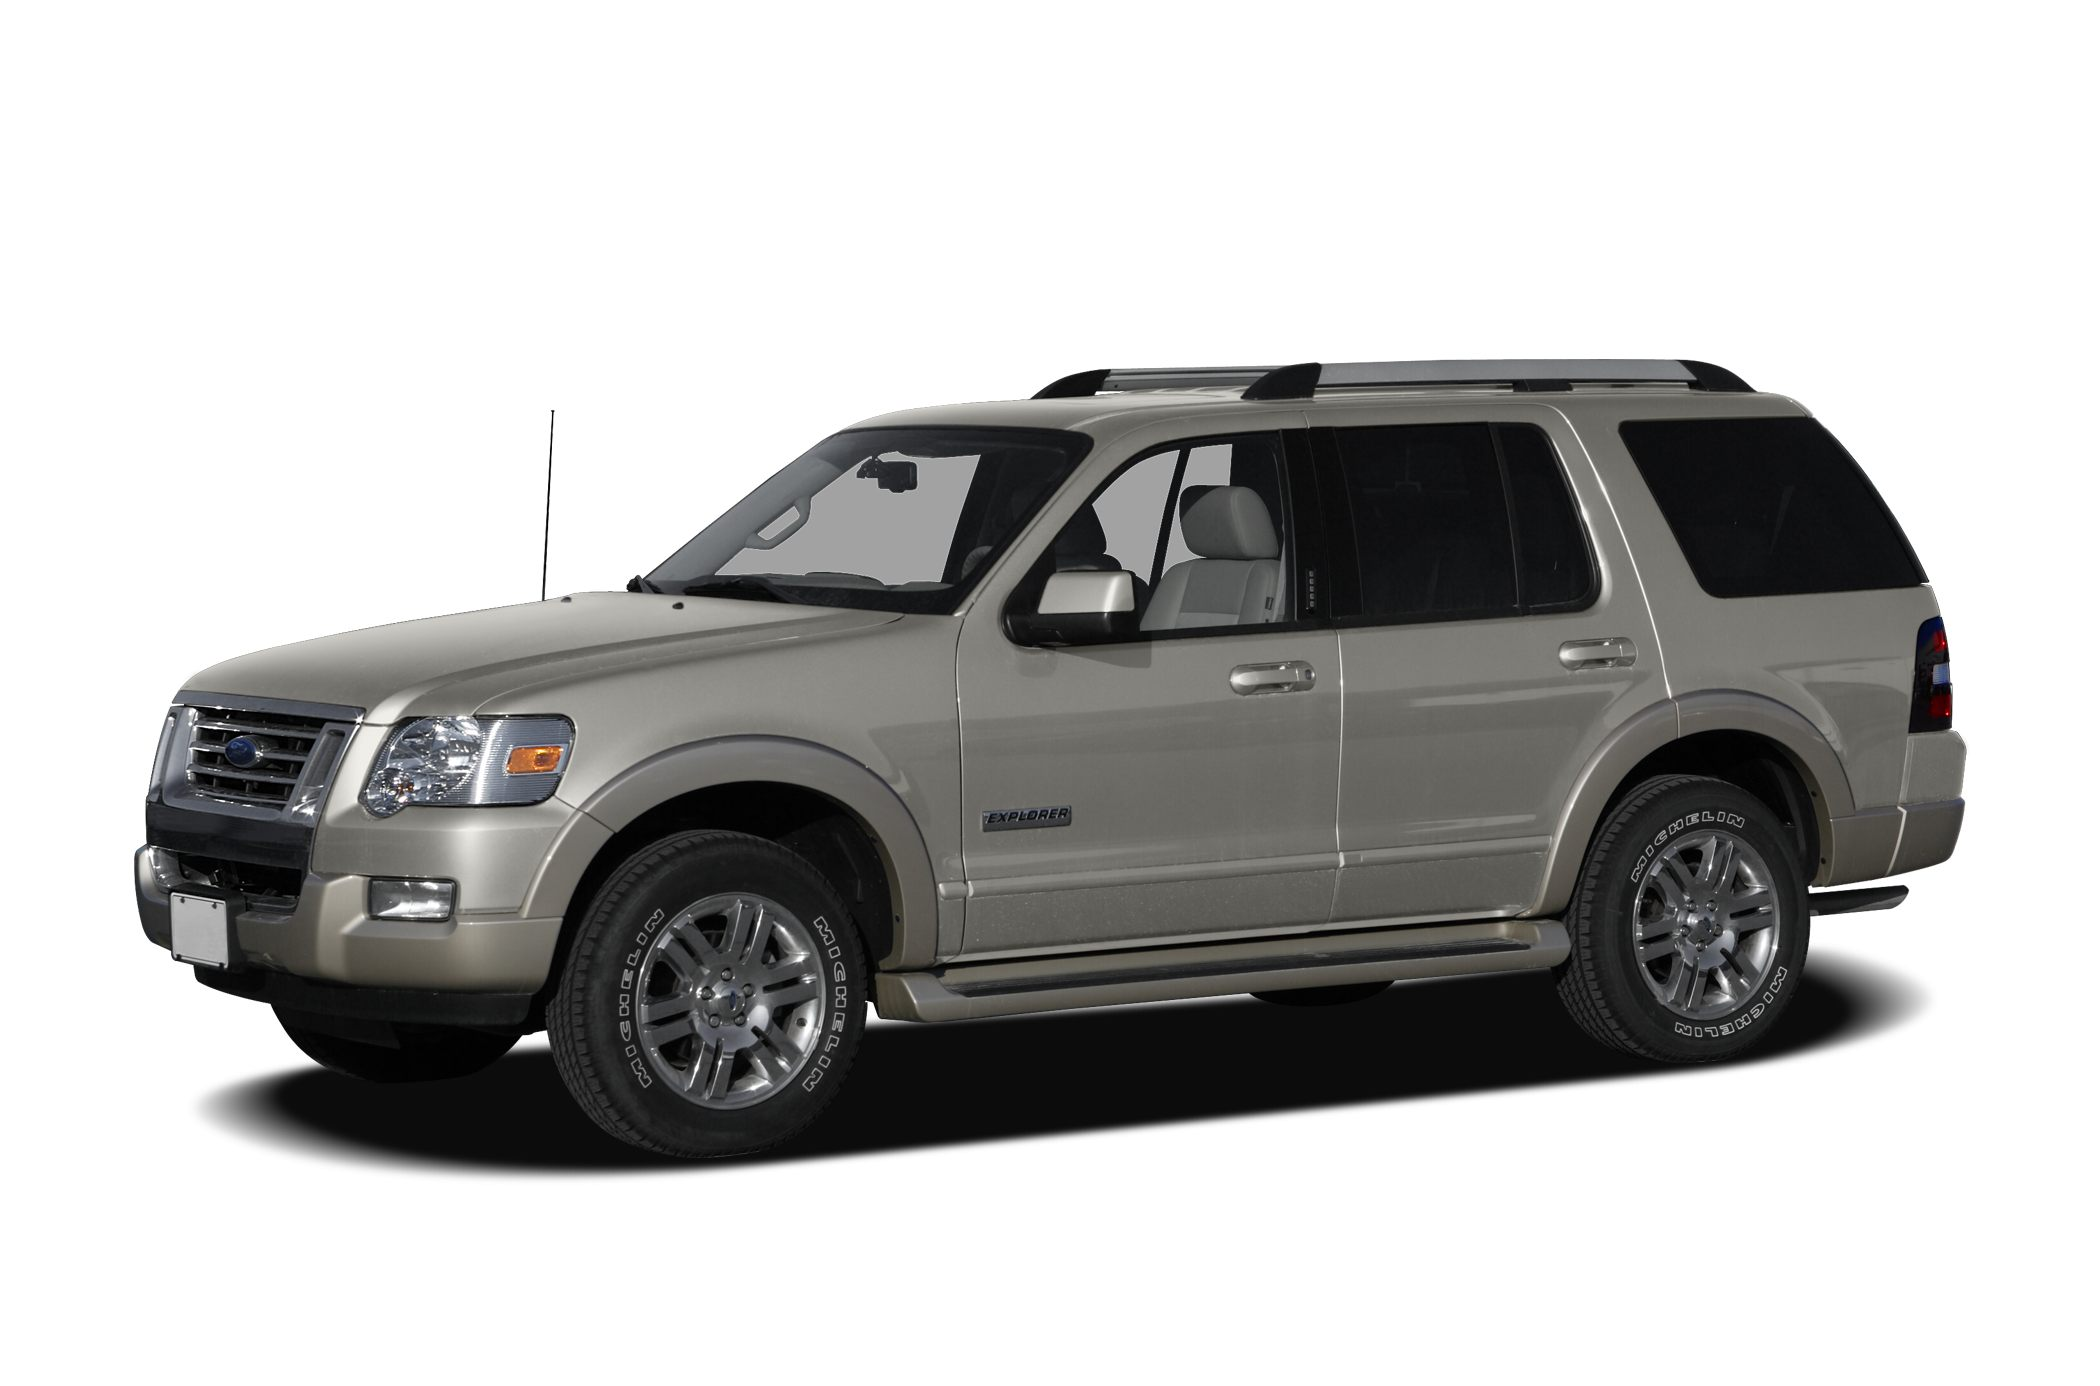 2006 Ford Explorer Specs And Prices